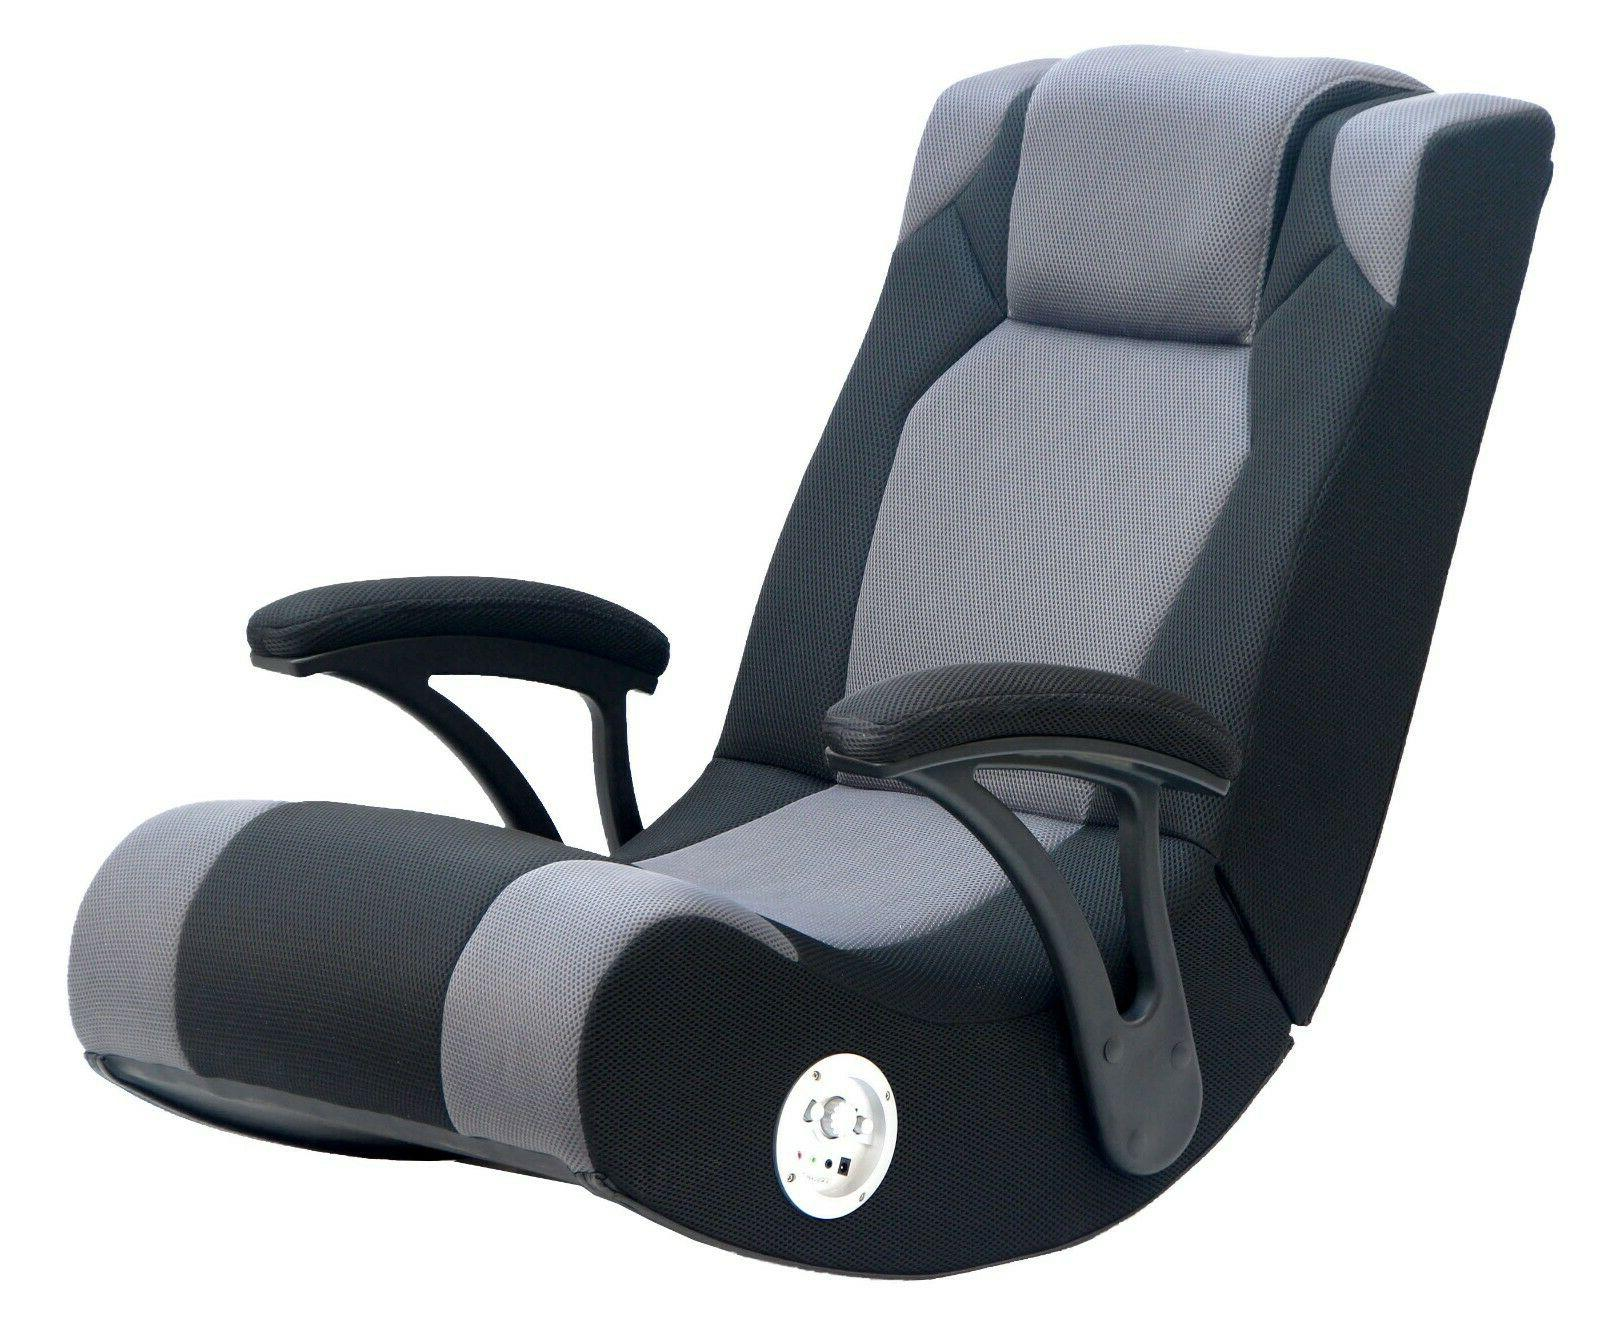 pro 200 gaming chair rocker with sound